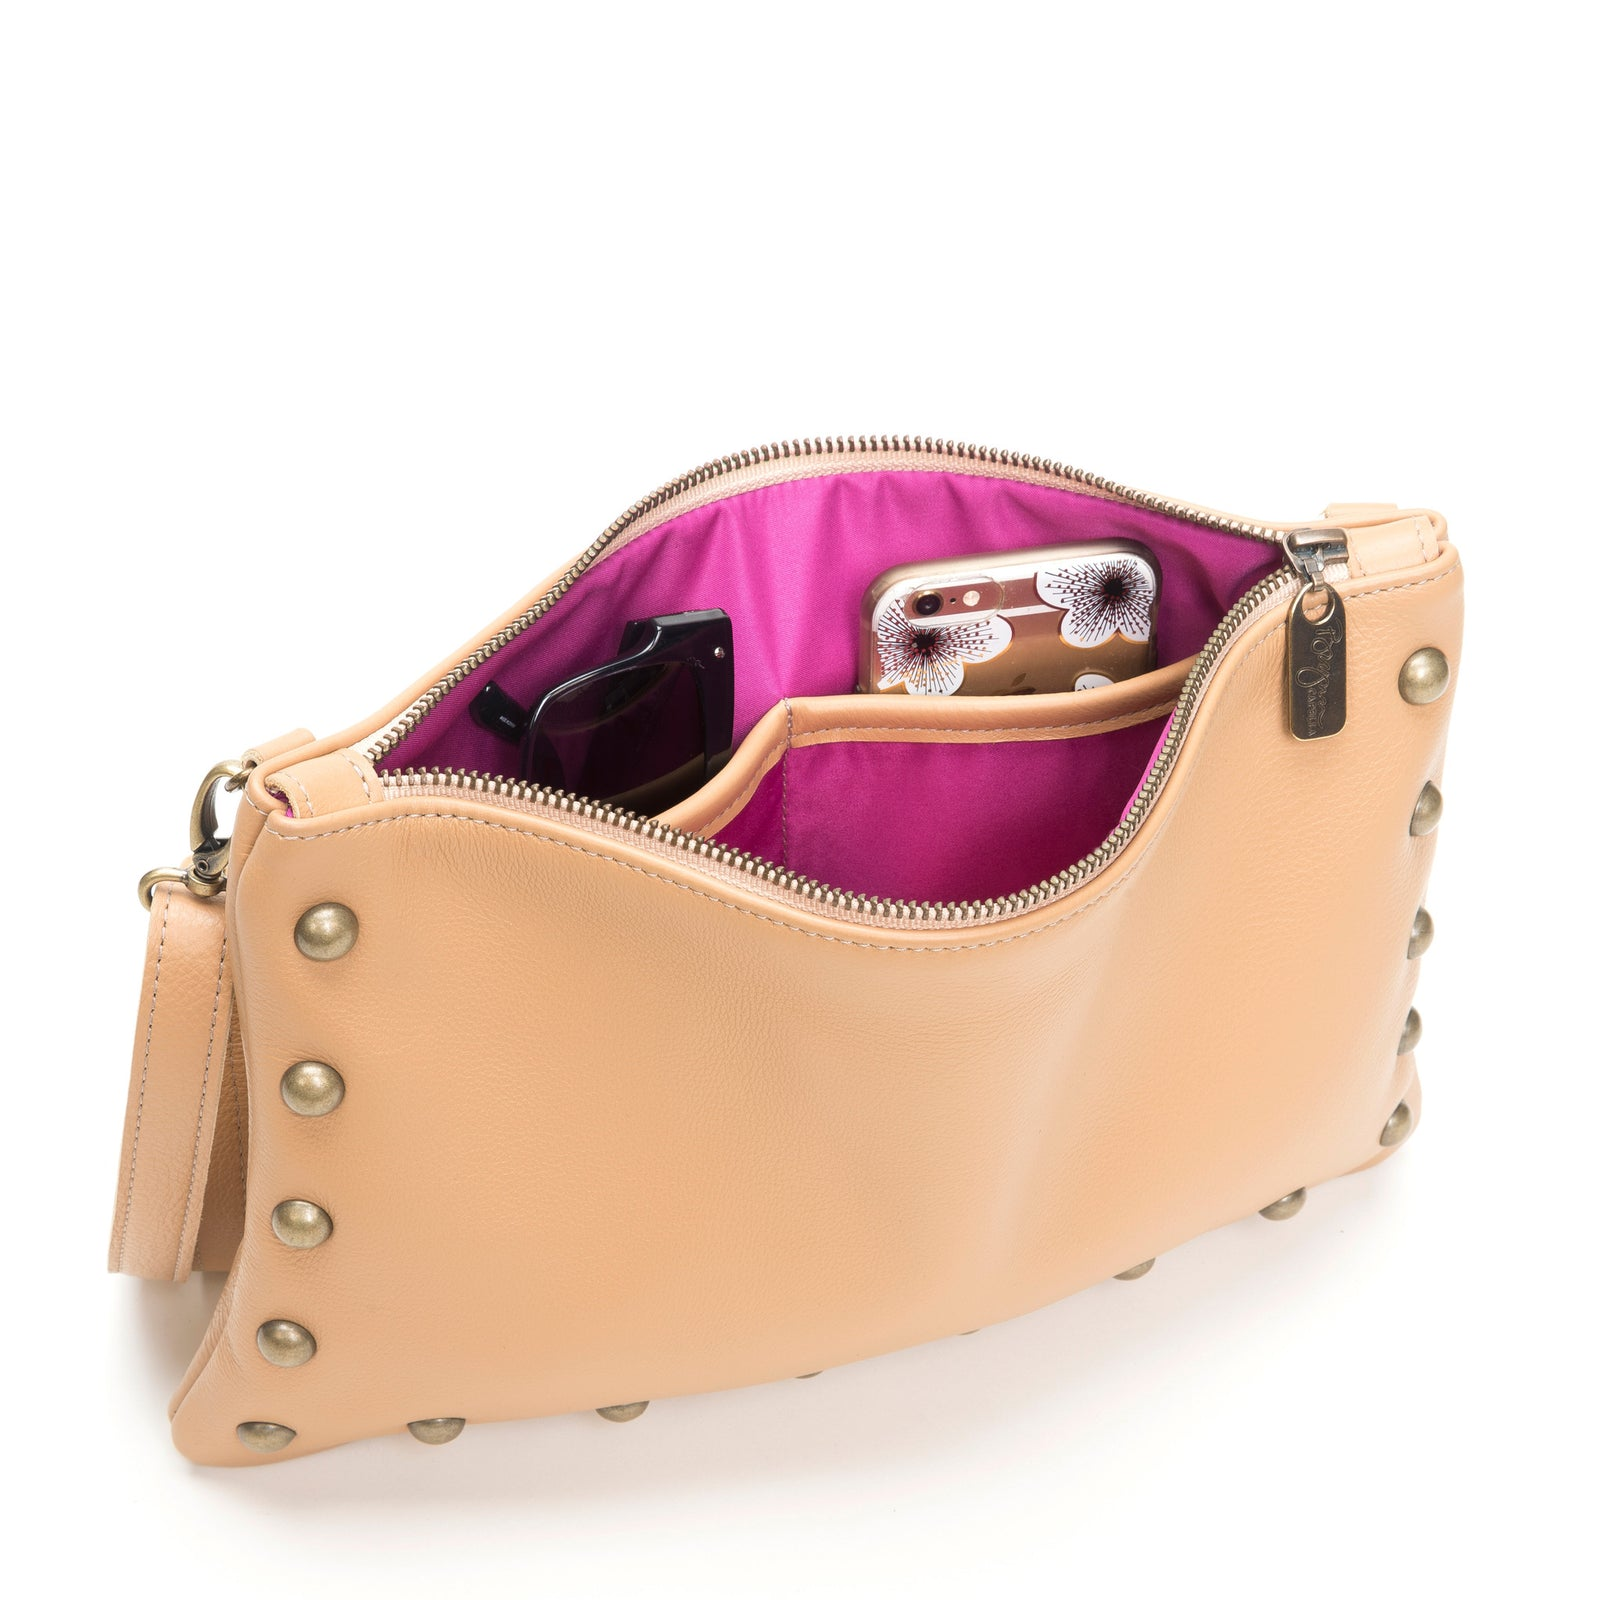 Nikki Clutch/Crossbody - Sand Dunes - Brynn Capella, Small Crossbody